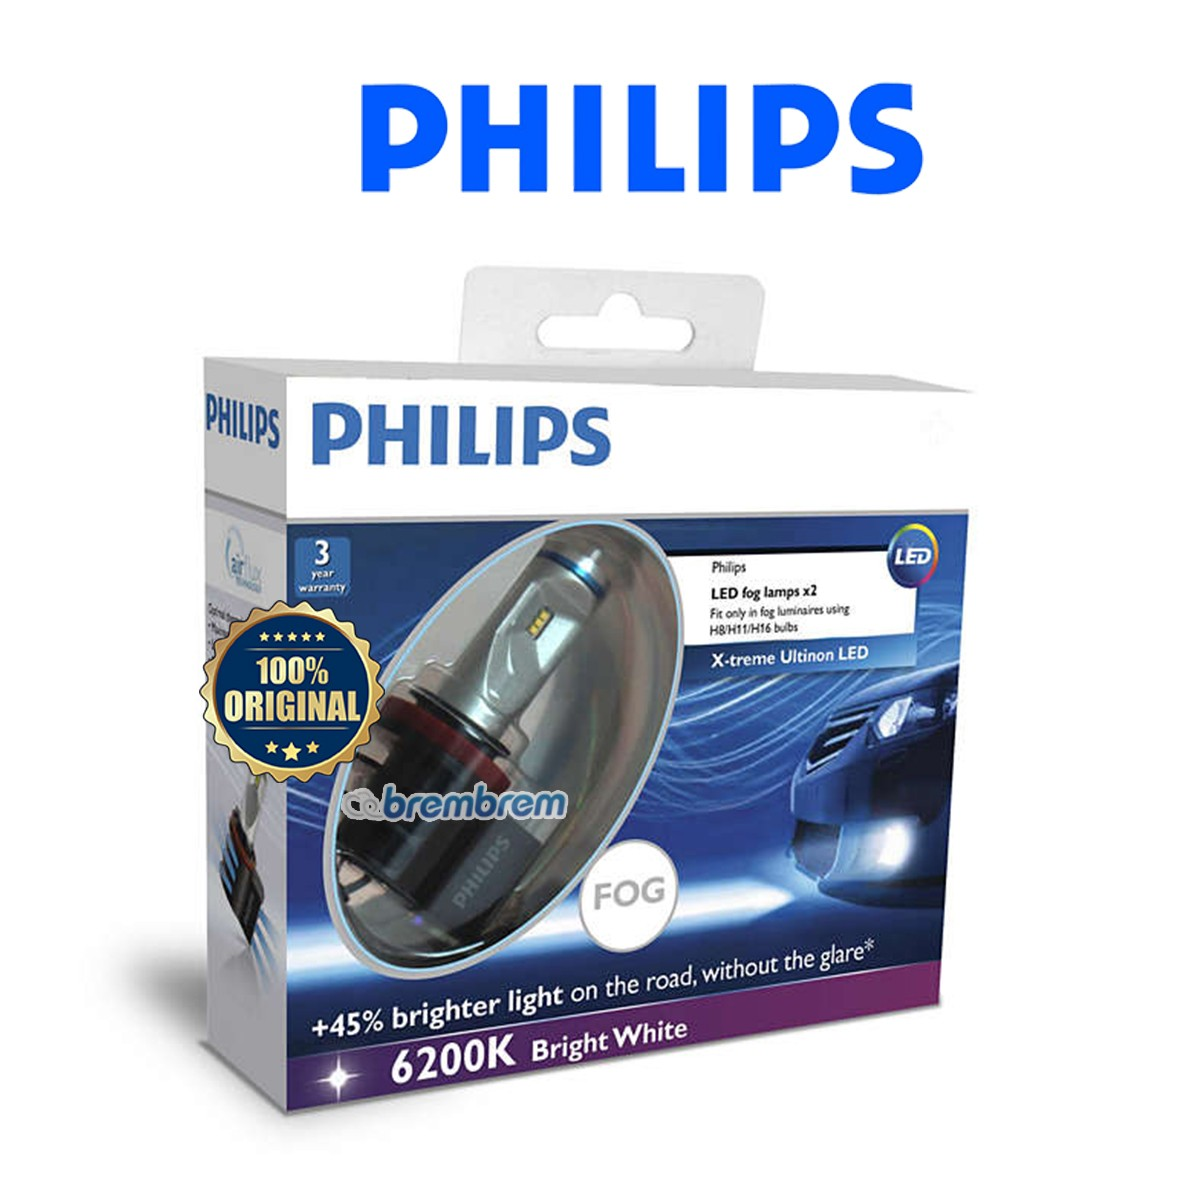 PHILIPS FOG RETROFIT H11 (6200K) - LAMPU LED HEADLAMP